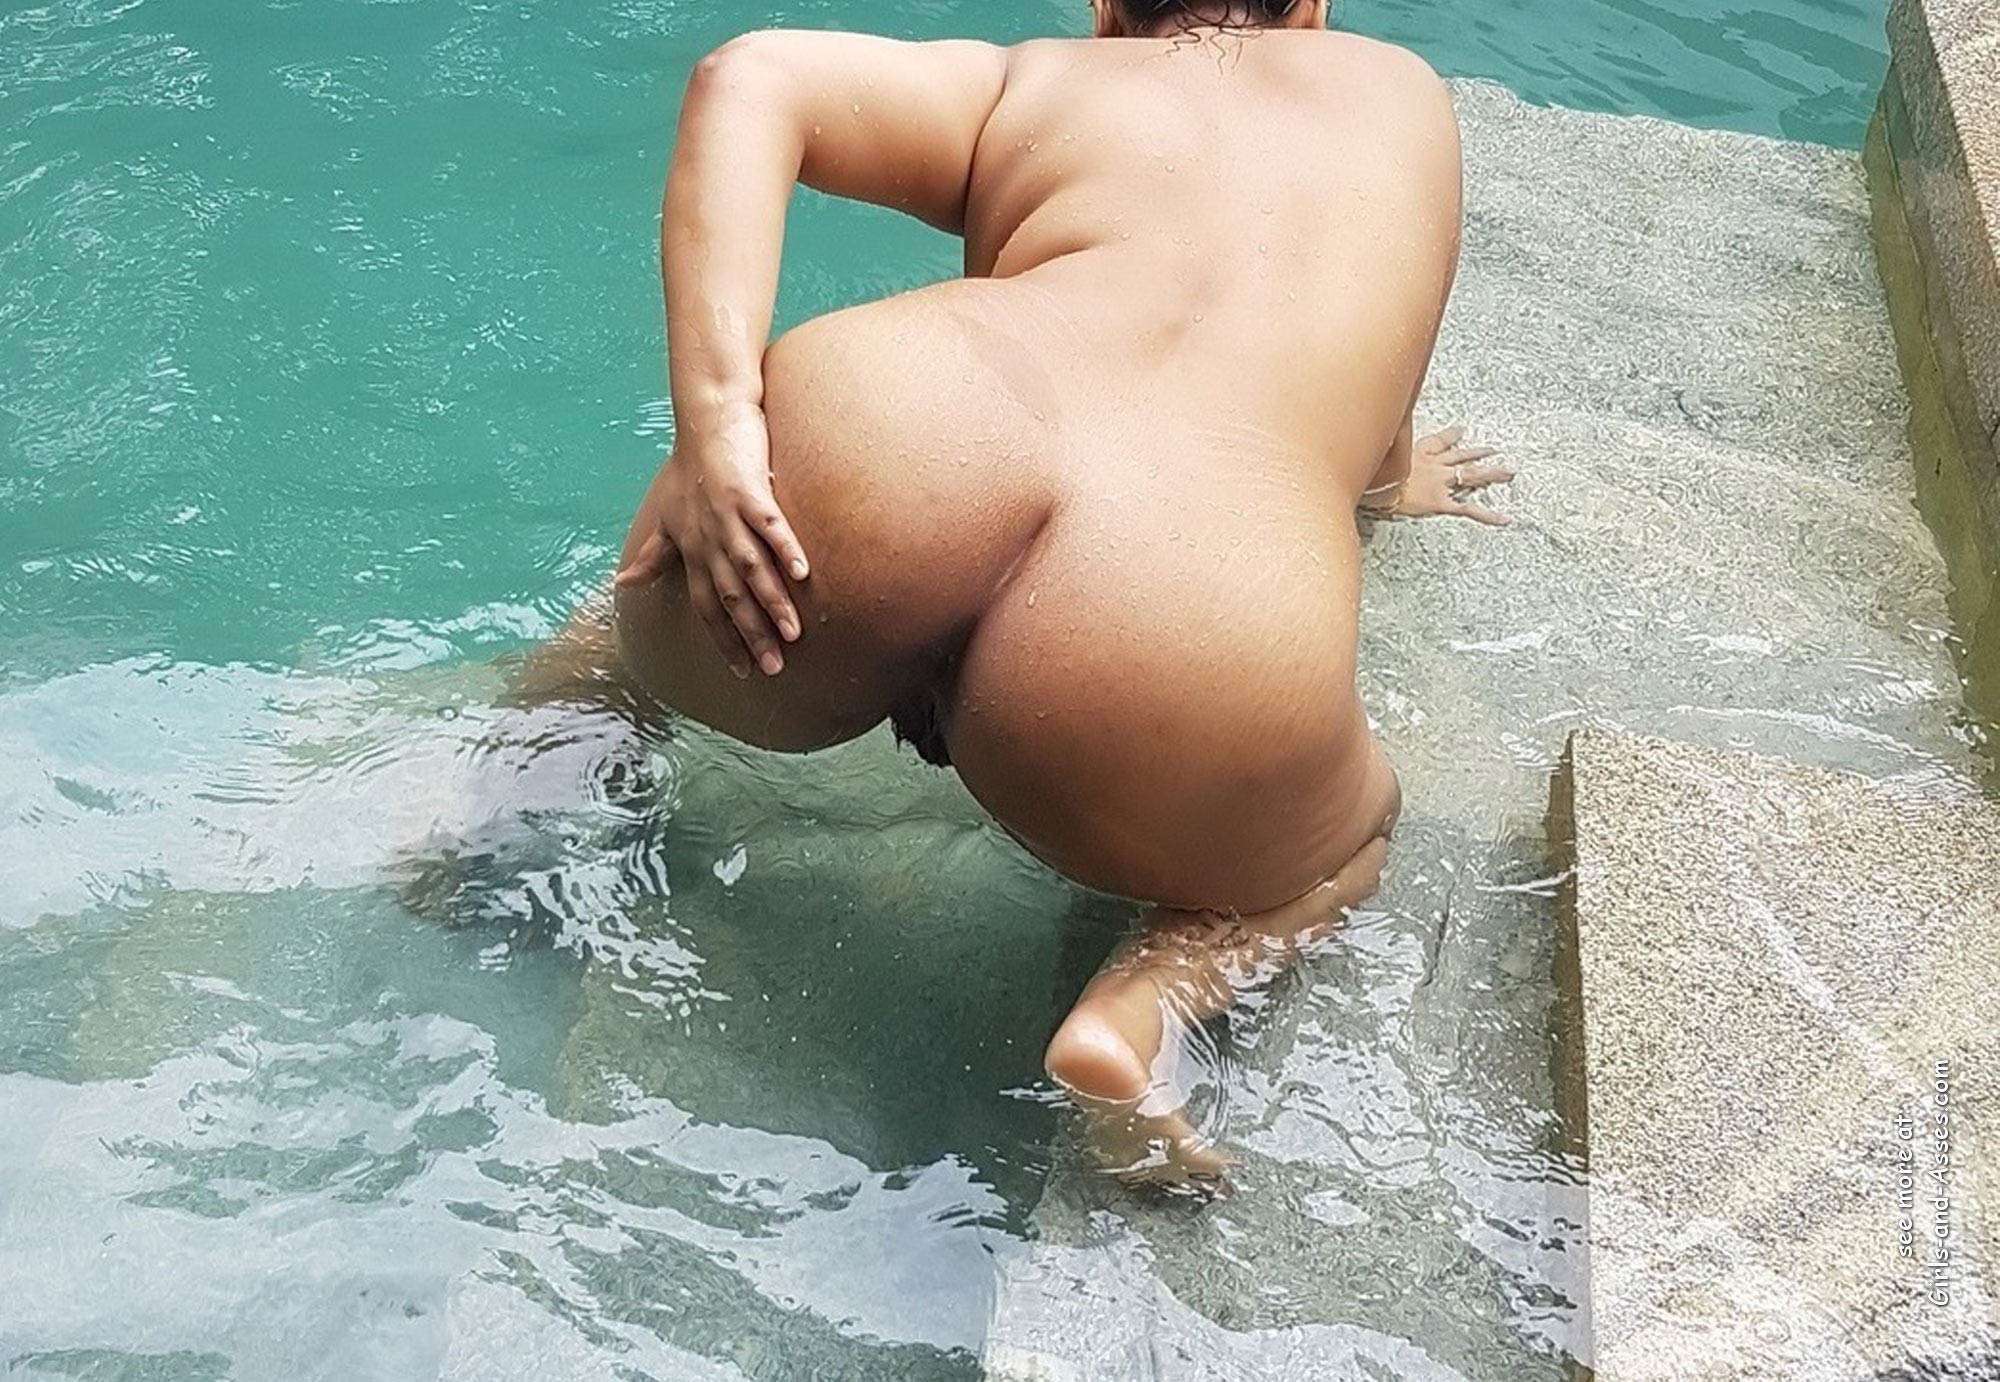 big thick naked booty at the pool picture 02034